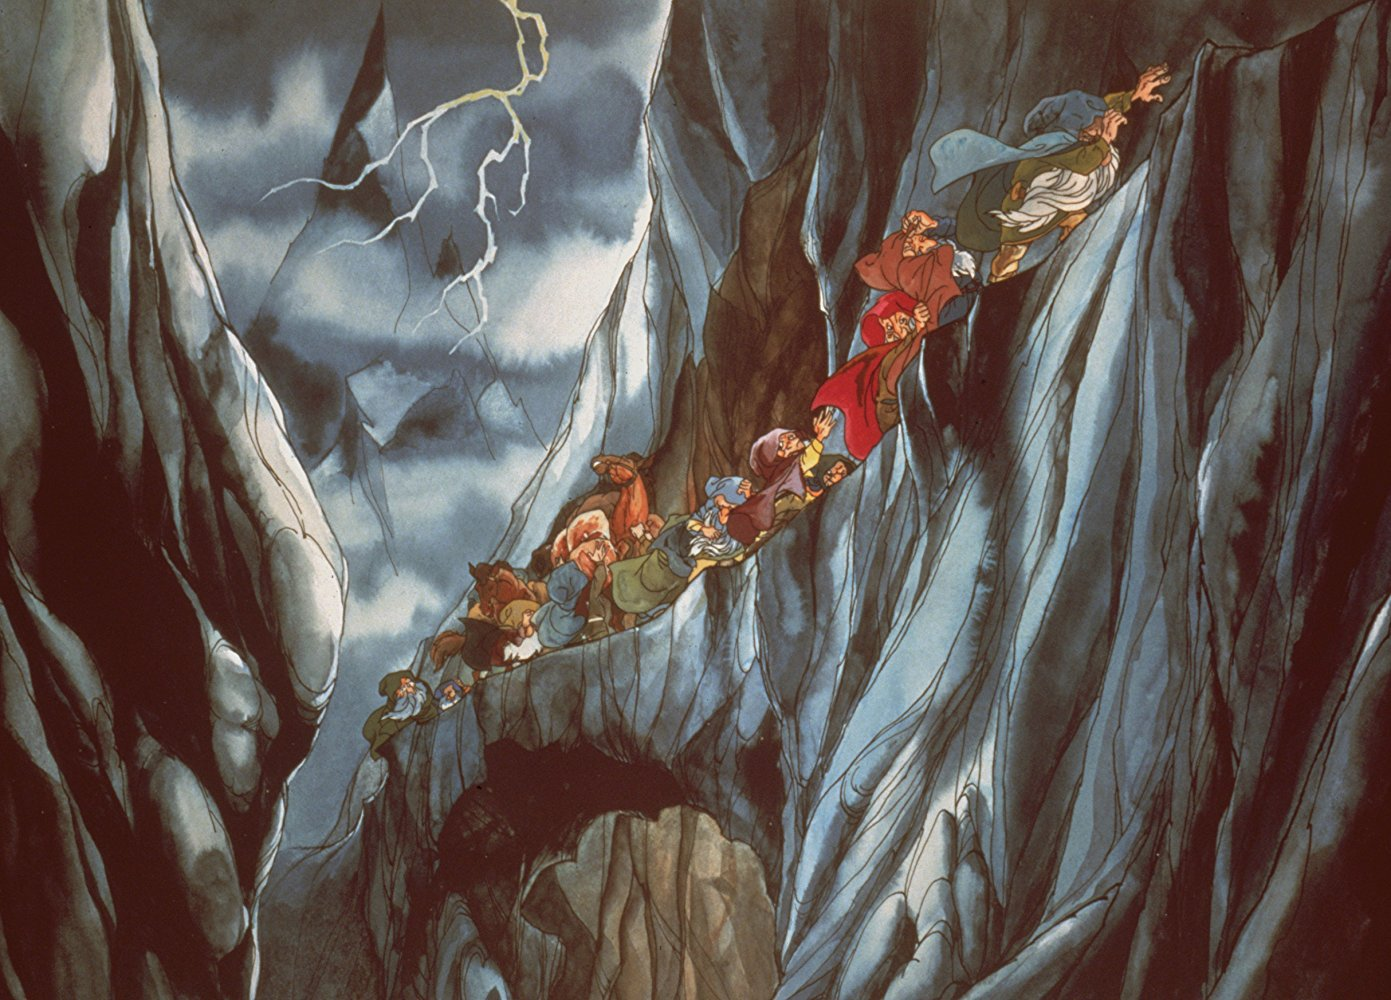 Bilbo and the hobbits on their journey to the Lonely Mountain in The Hobbit (1977)